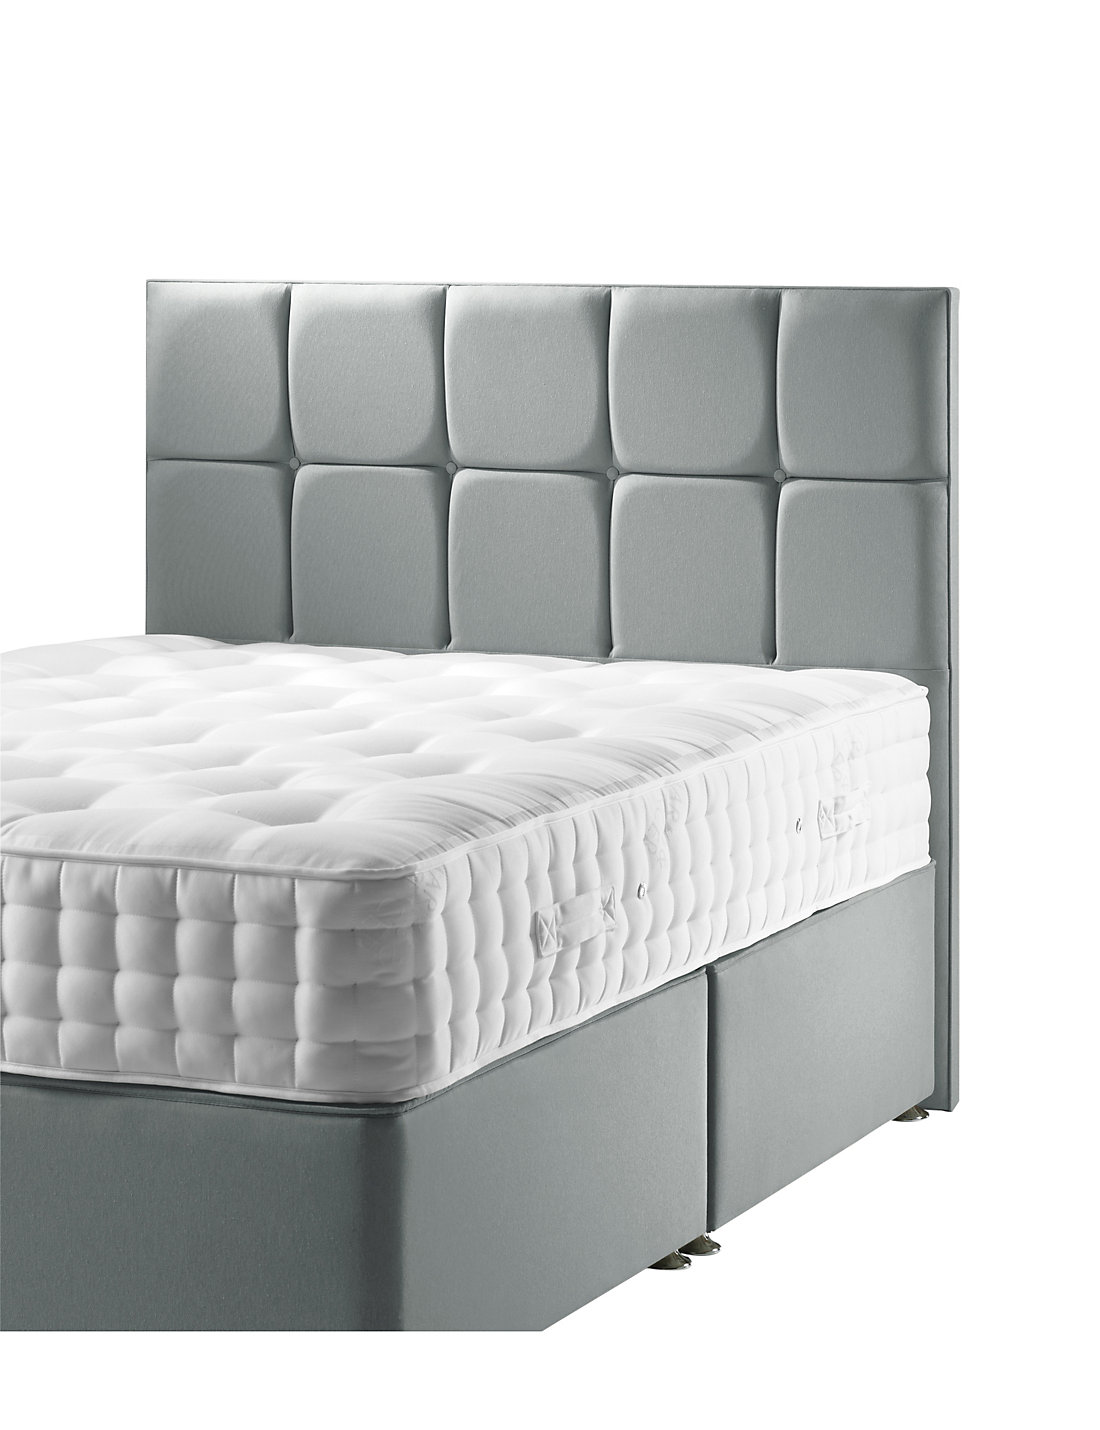 White Wooden Headboard Double Bed Uk Full Size Of Design